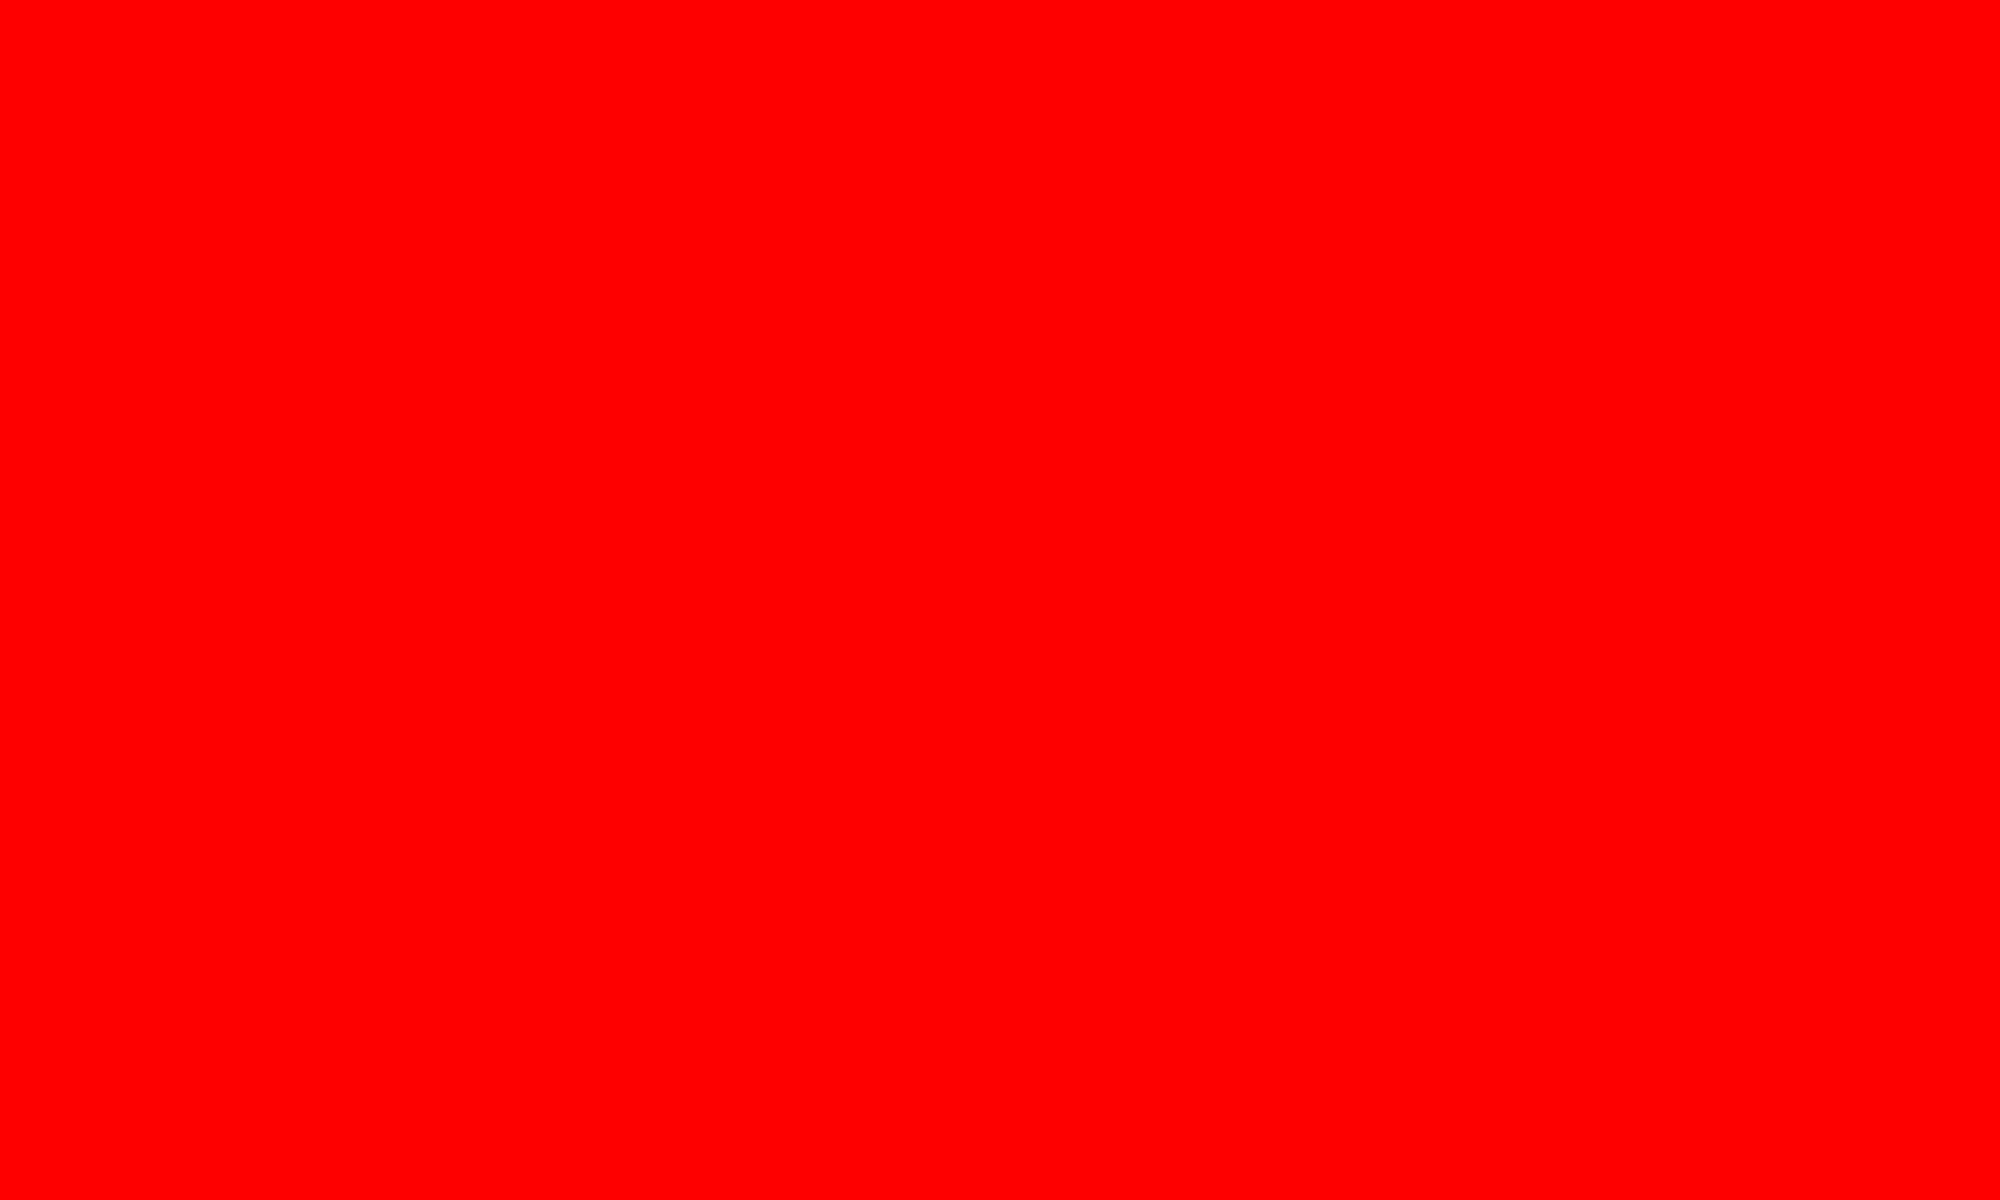 cropped-red.jpg